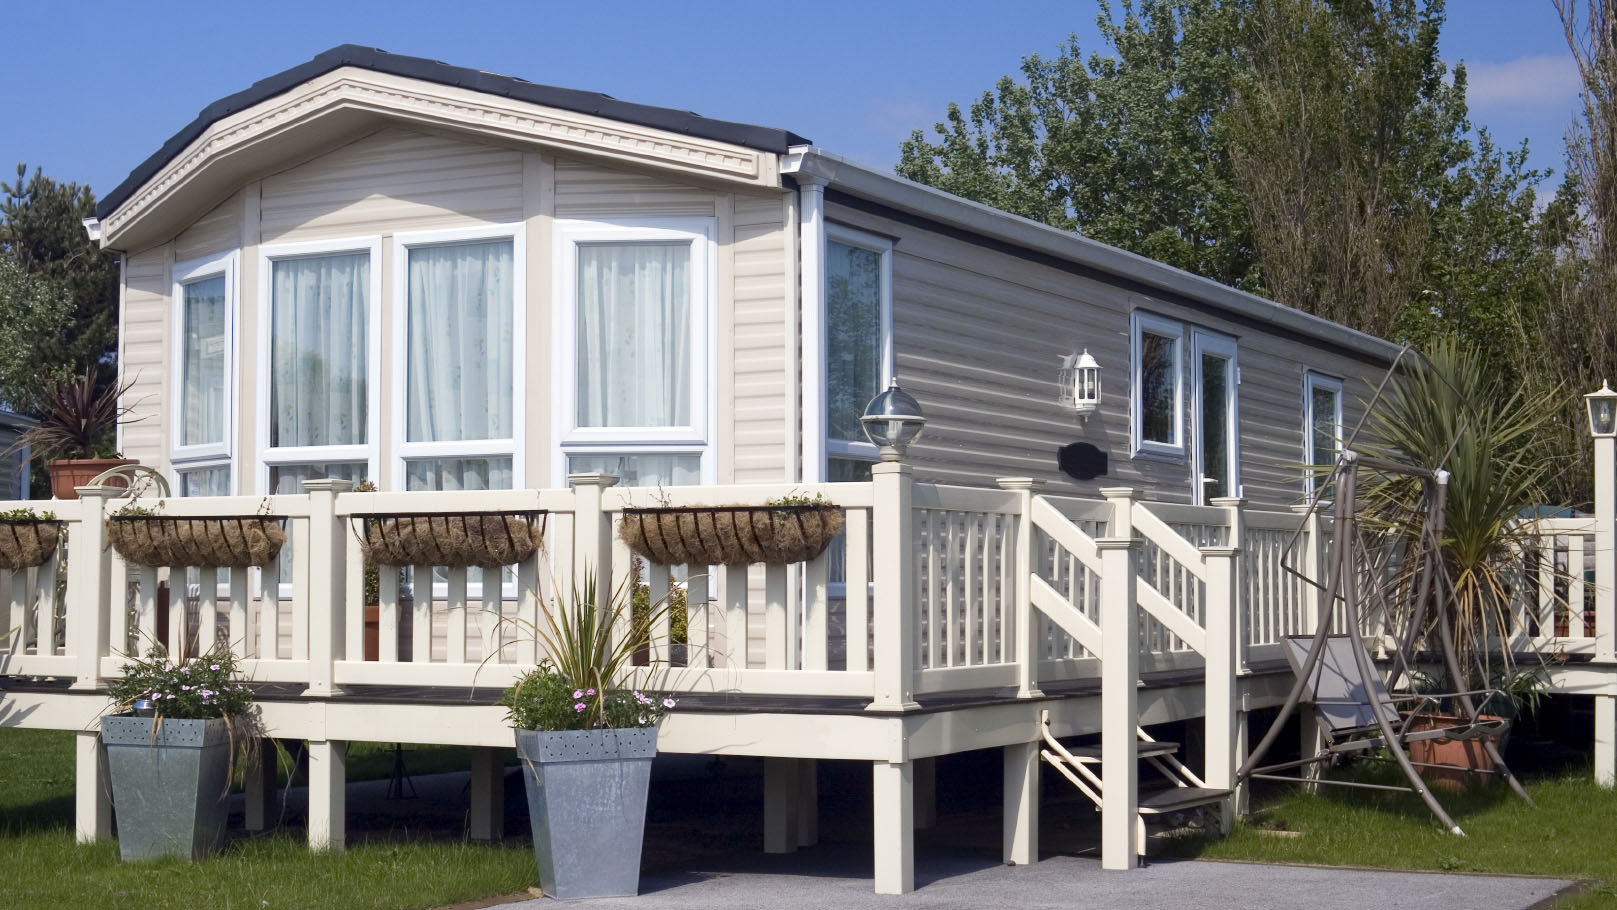 Mobile Homes For Rent Near Me Under $500, mobile homes for rent near me under $500 a month, mobile homes for rent near me under $500 orlando fl, mobile homes for rent near me under 500 nj, mobile homes for rent near me under 500 nc, mobile homes for sale near me under $500, mobile homes for sale near me under 5000, mobile homes for rent under 500,